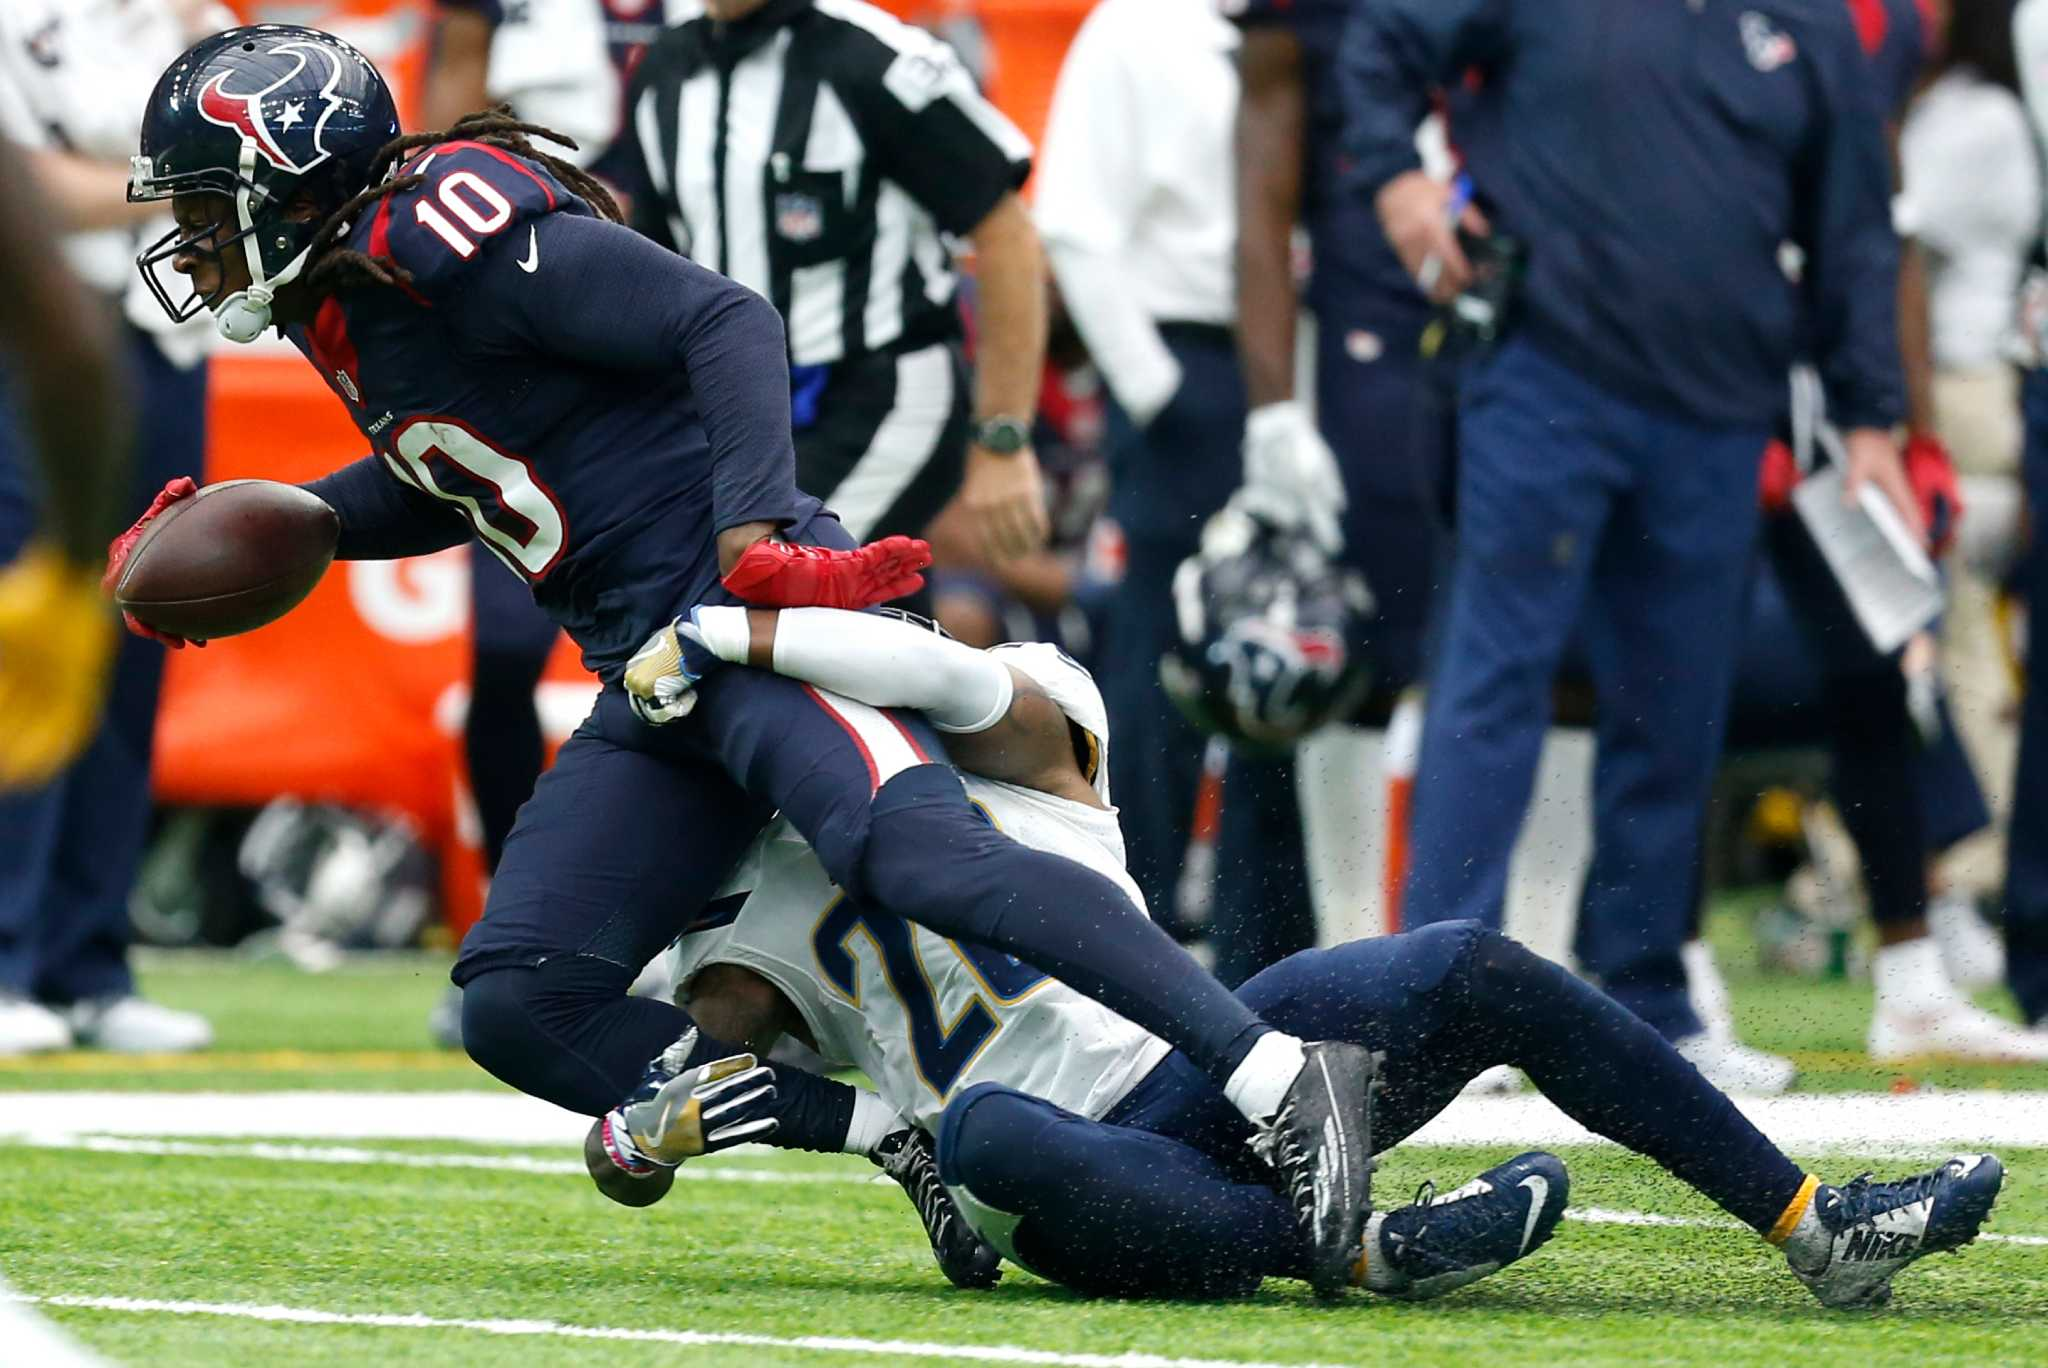 Texans at Chargers: John McClain's scouting report